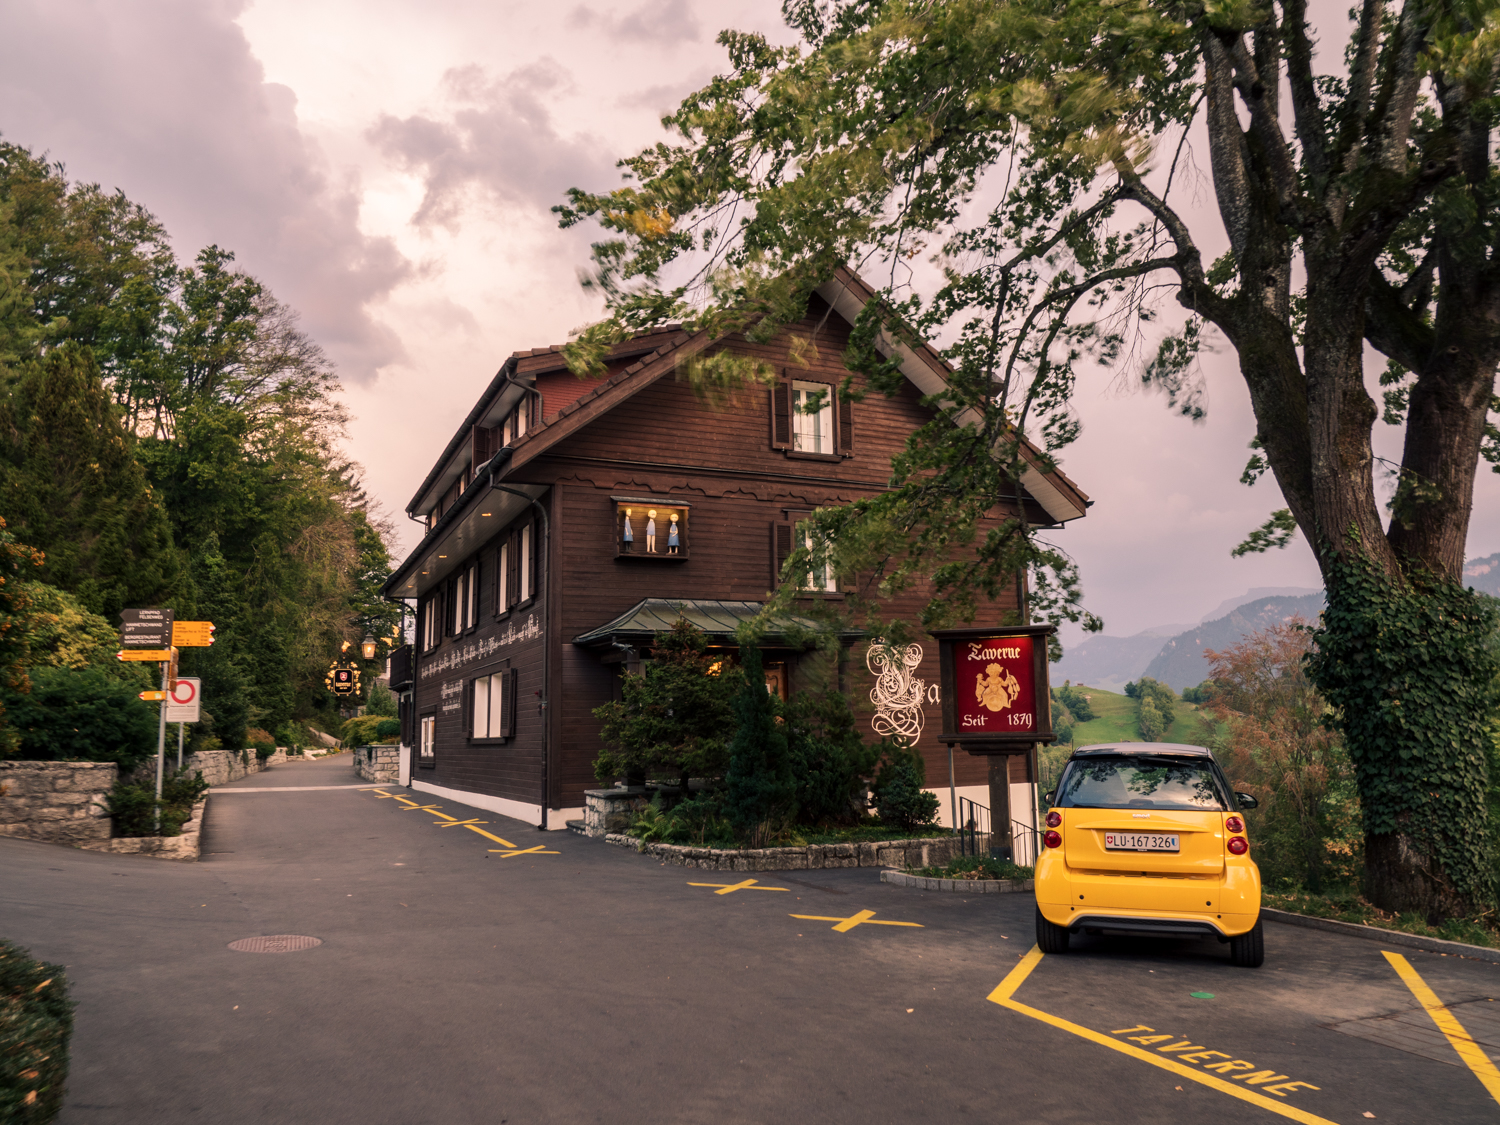 Taverne 1879, Buergenstock Resort, Switzerland. Photo: Gunjan Virk.